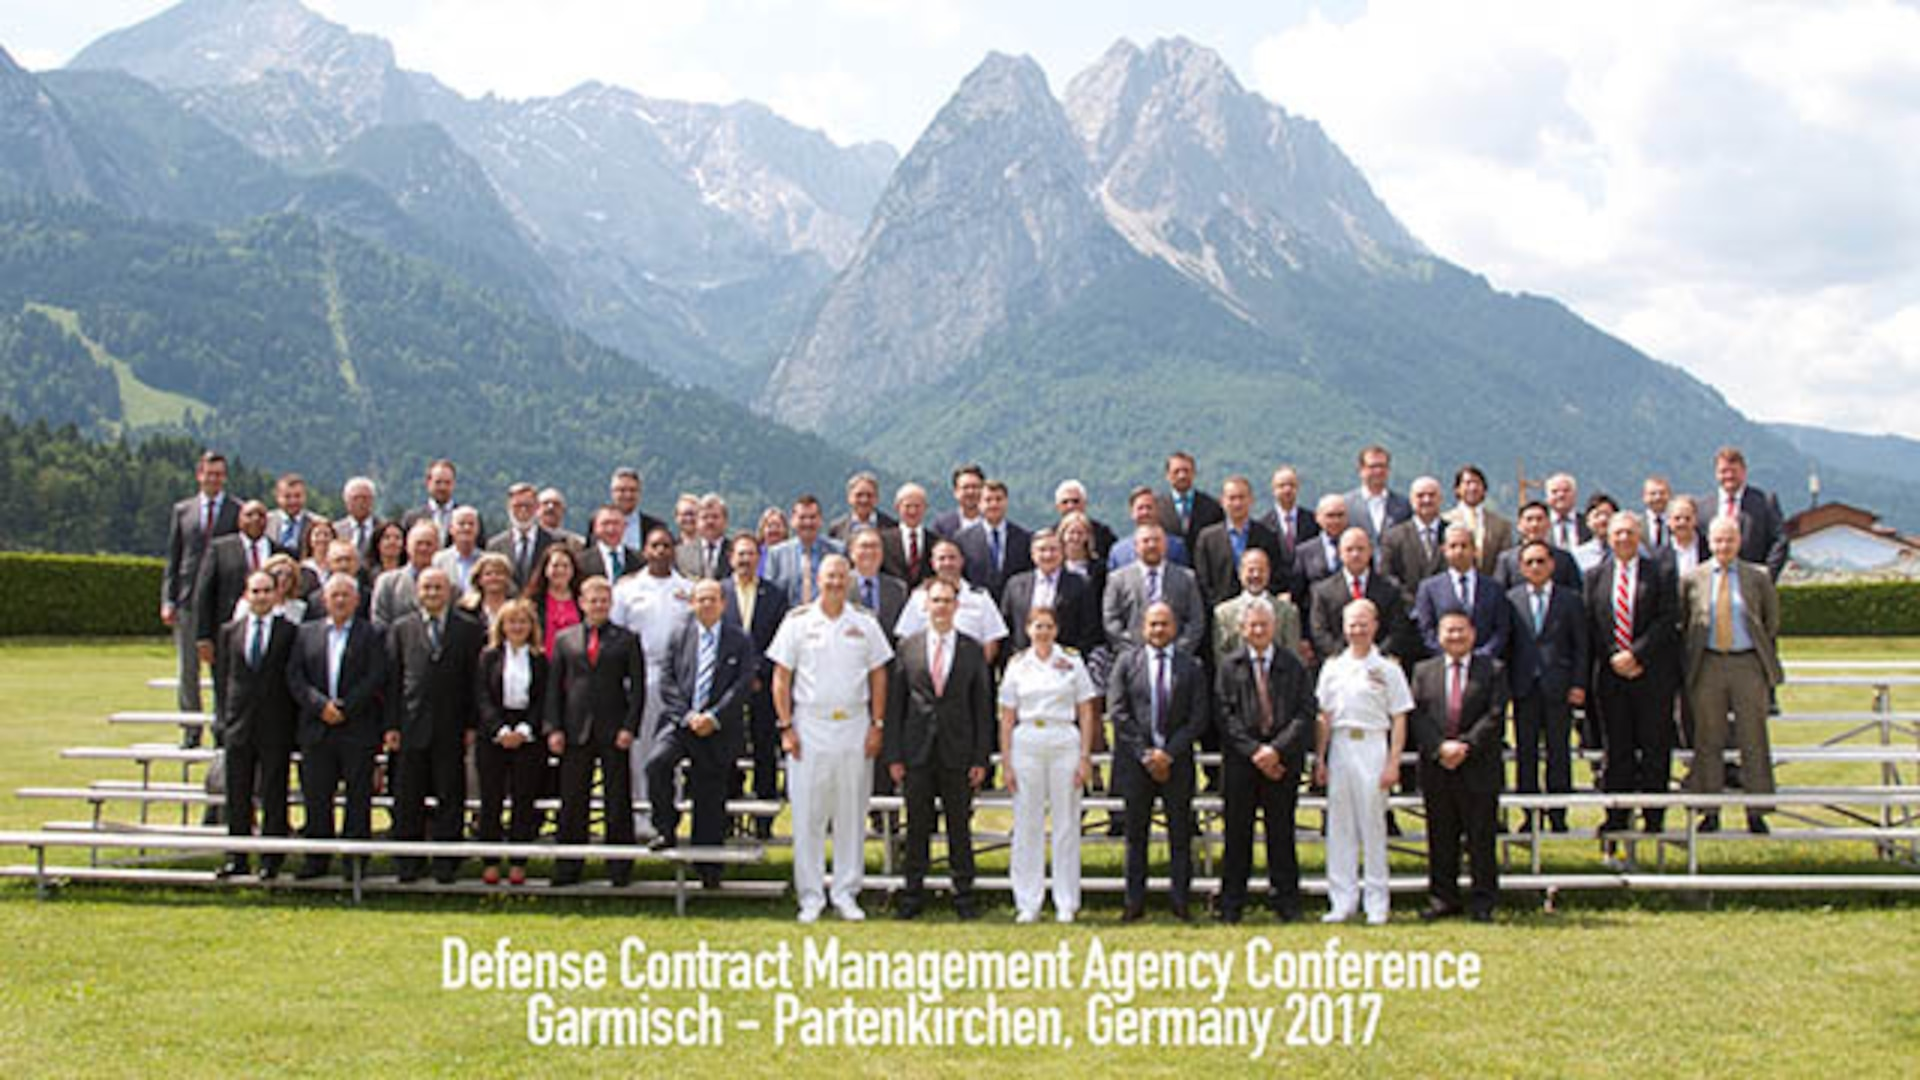 Navy Vice Adm. David Lewis (front row far left), Defense Contract Management Agency director, joined members of the agency's International Directorate and partner-nation officials at the DCMA's 16th Host Nation Conference. The conference provides a forum to discuss quality assurance and contract auditing. (Photo courtesy Edelweiss Lodge and Resort)